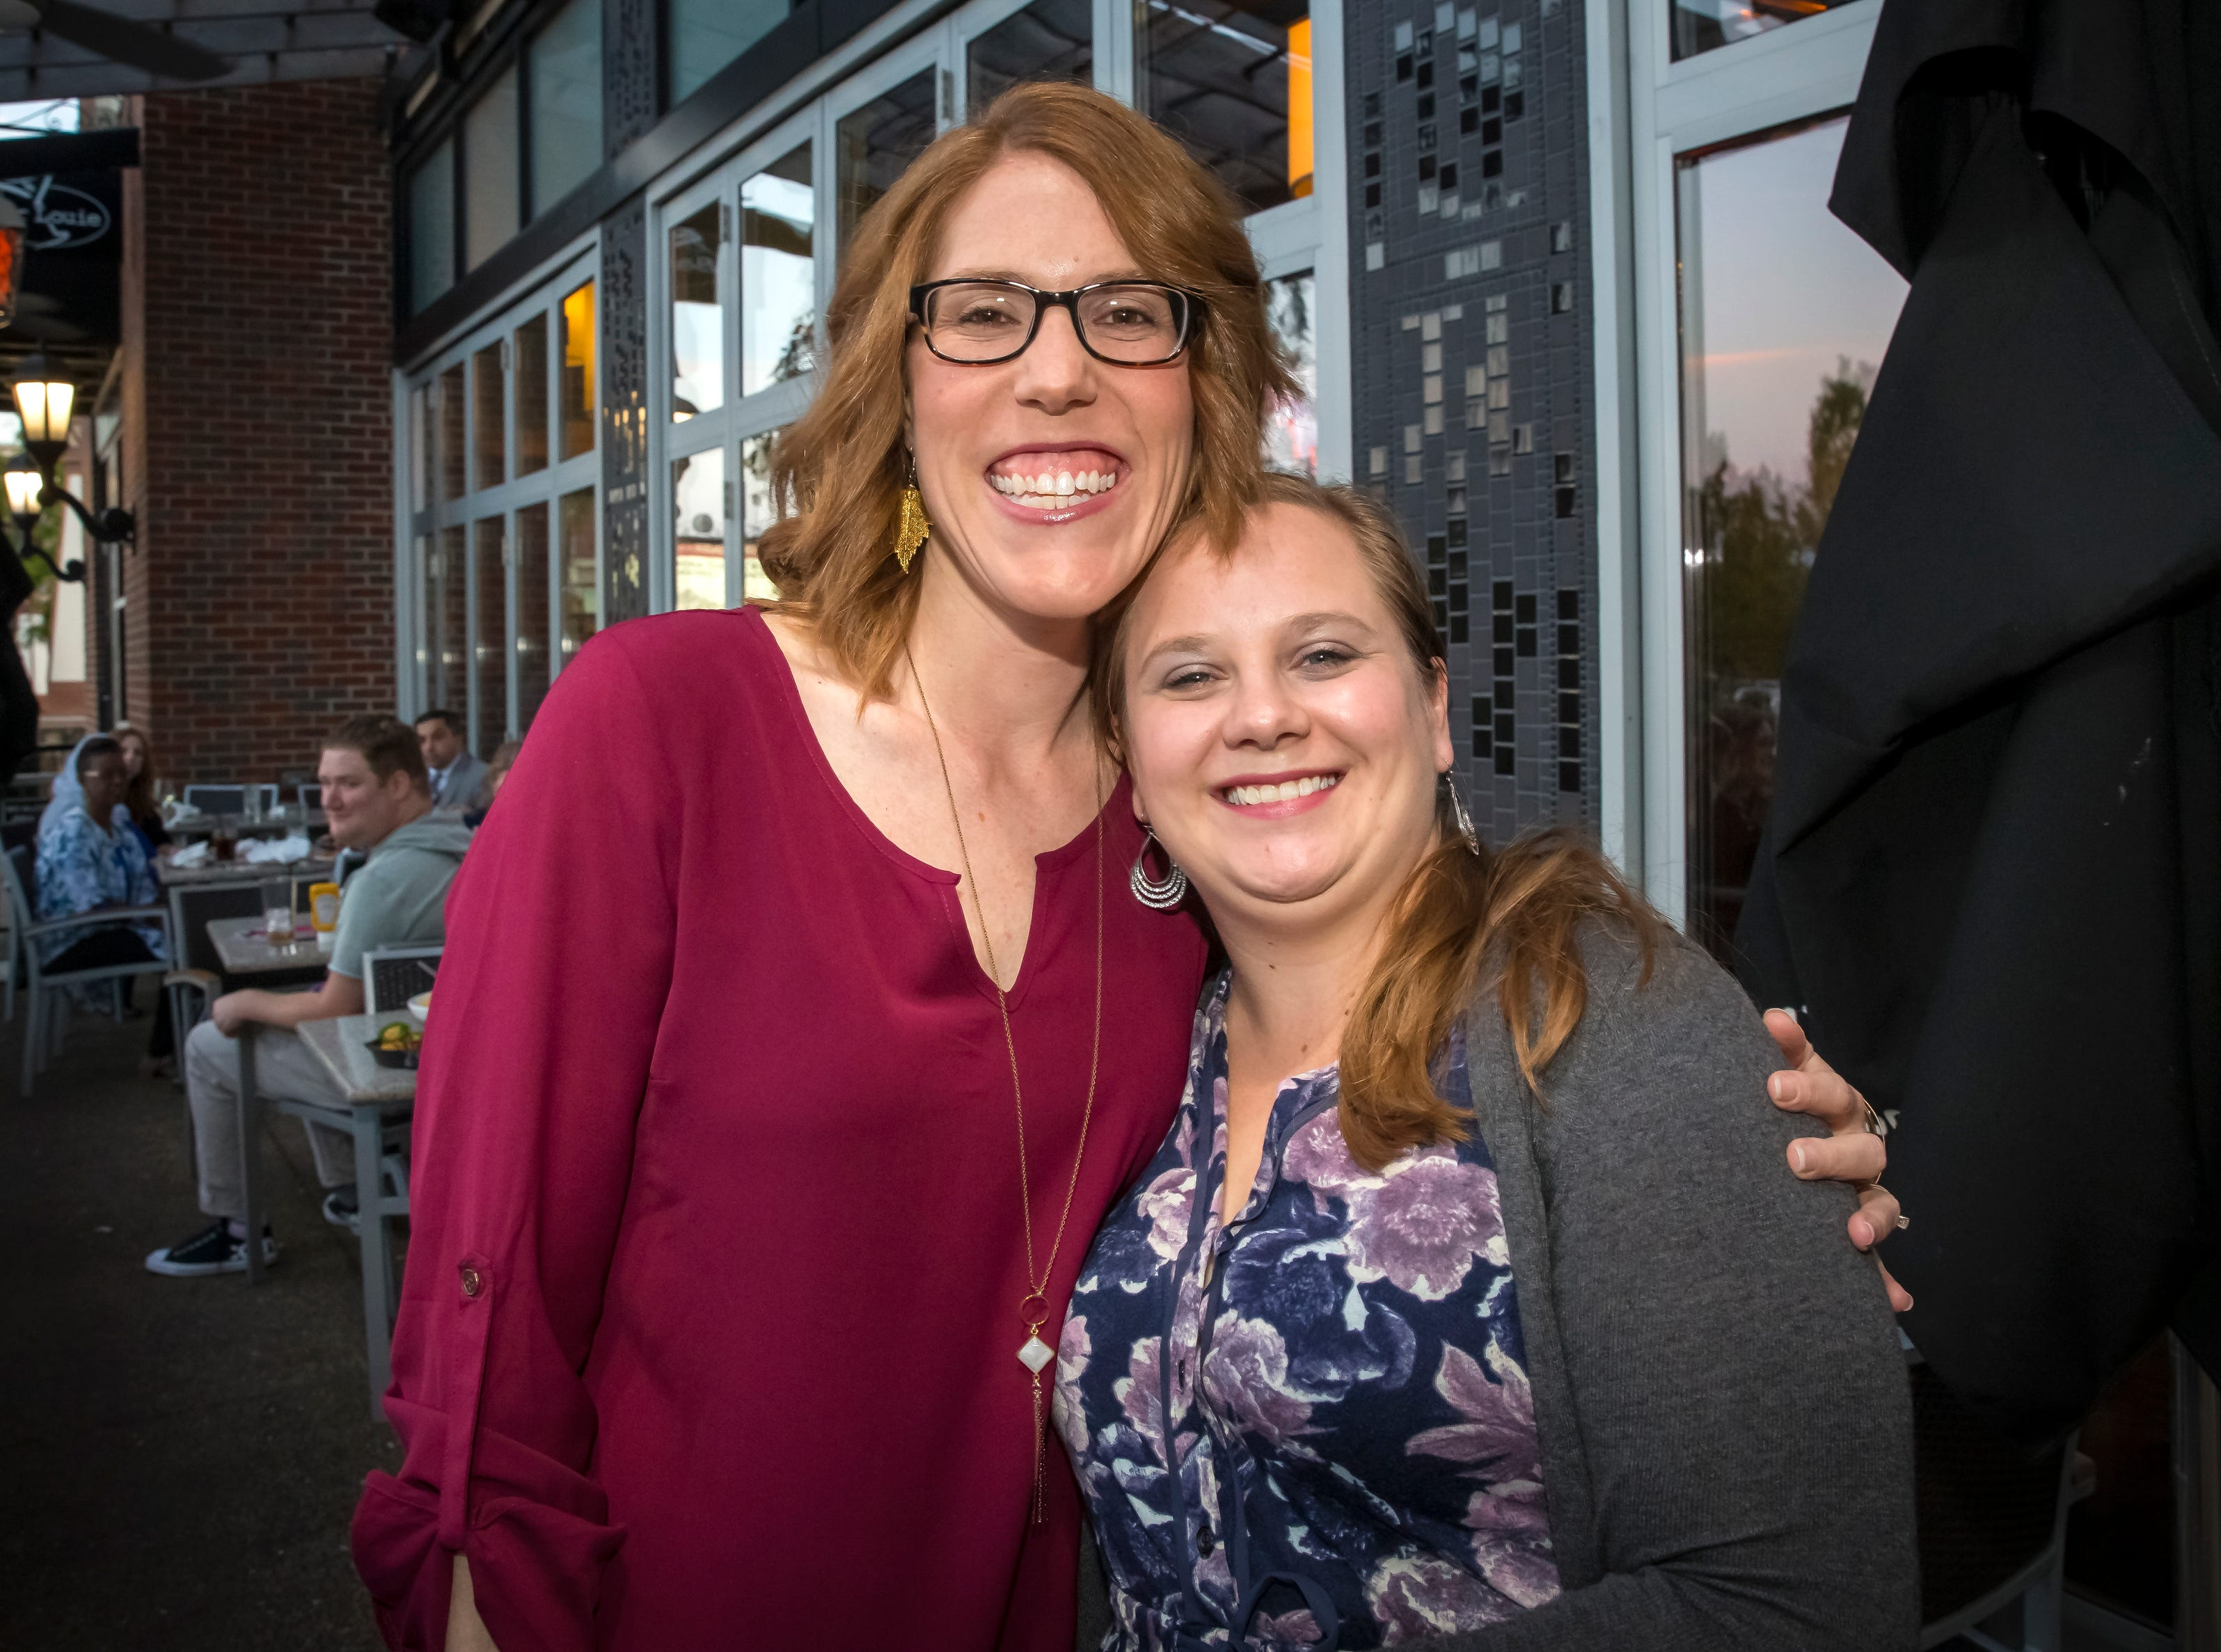 Kristi Crass and Sarah Clark at the Murfreesboro Magazine Most Beautiful People event held at Bar Louie.photo by Jim Davis/for the DNJ